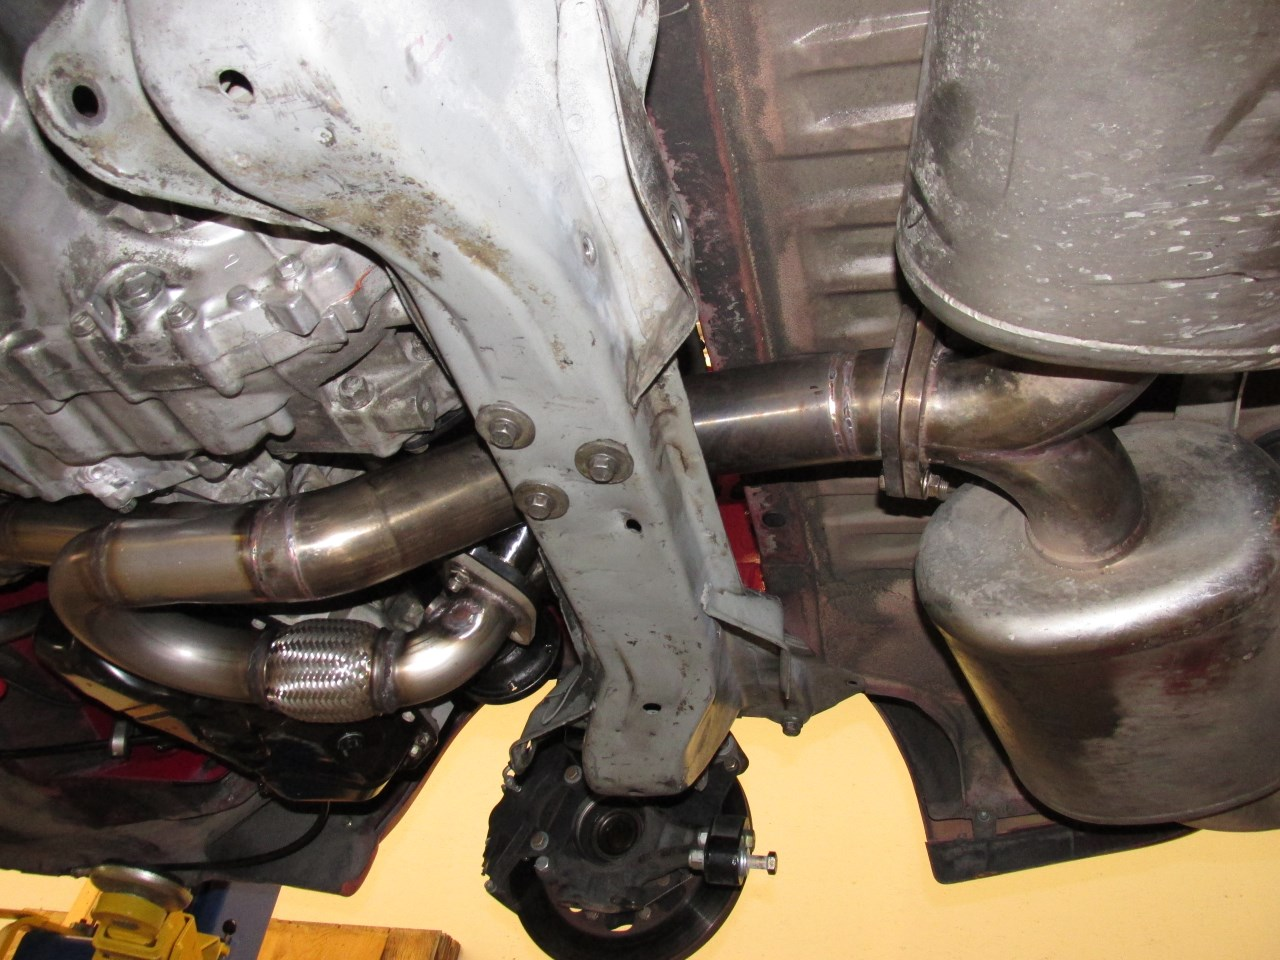 hight resolution of finally the last step on my exhaust was sending the headers and y pipe off to be ceramic coated i used performance coatings in washington